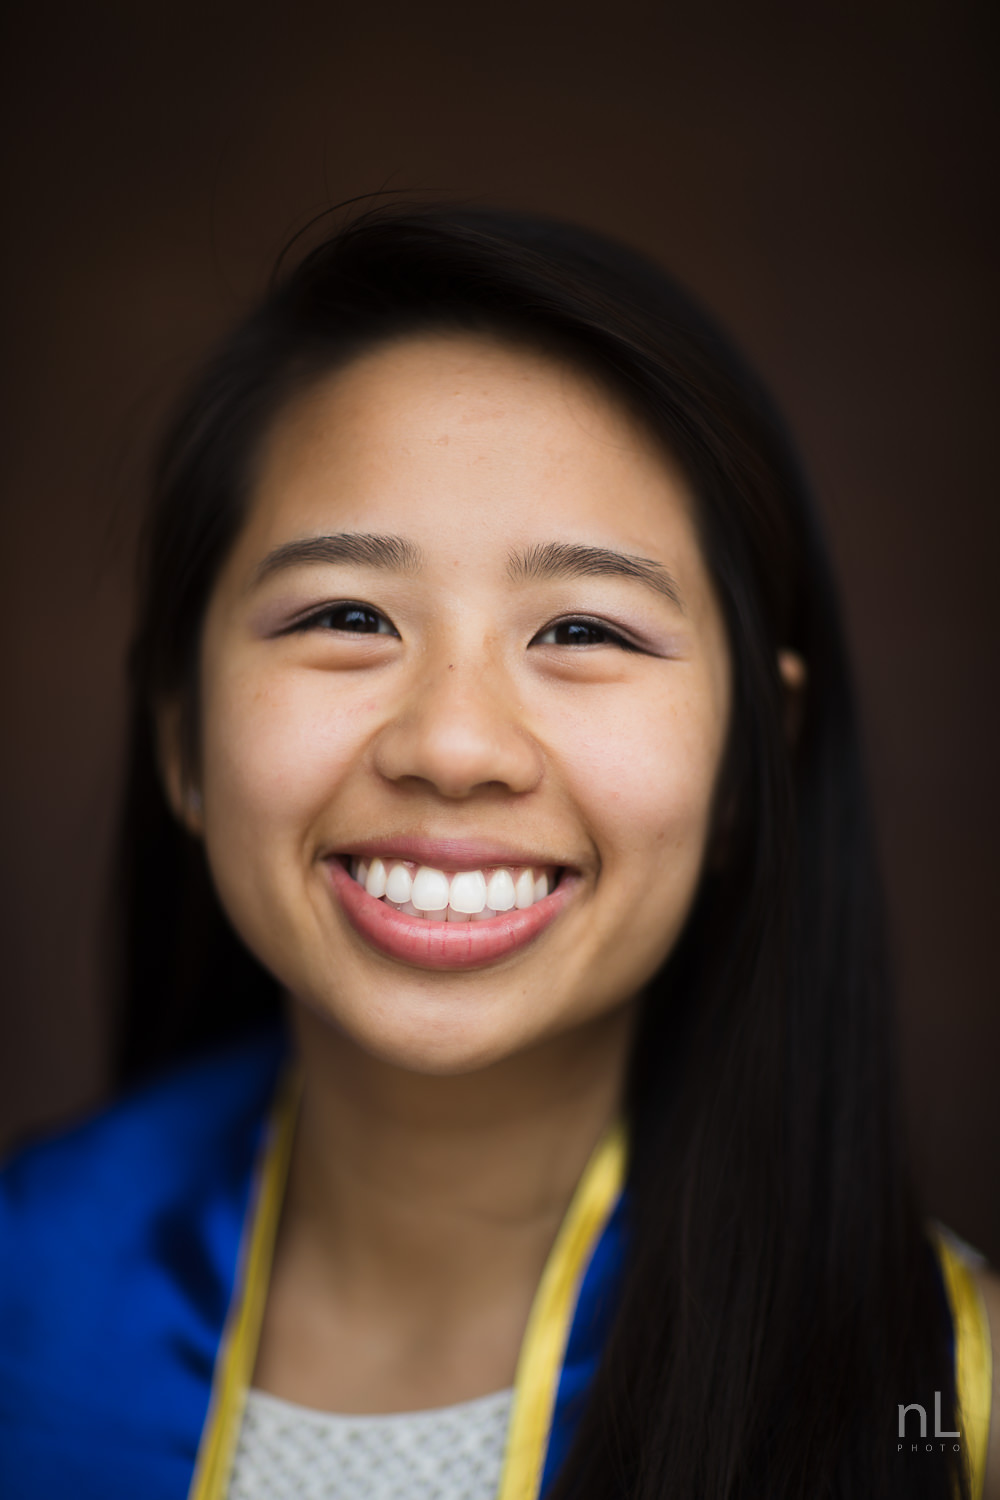 los-angeles-ucla-senior-graduation-portraits-2-2.jpg